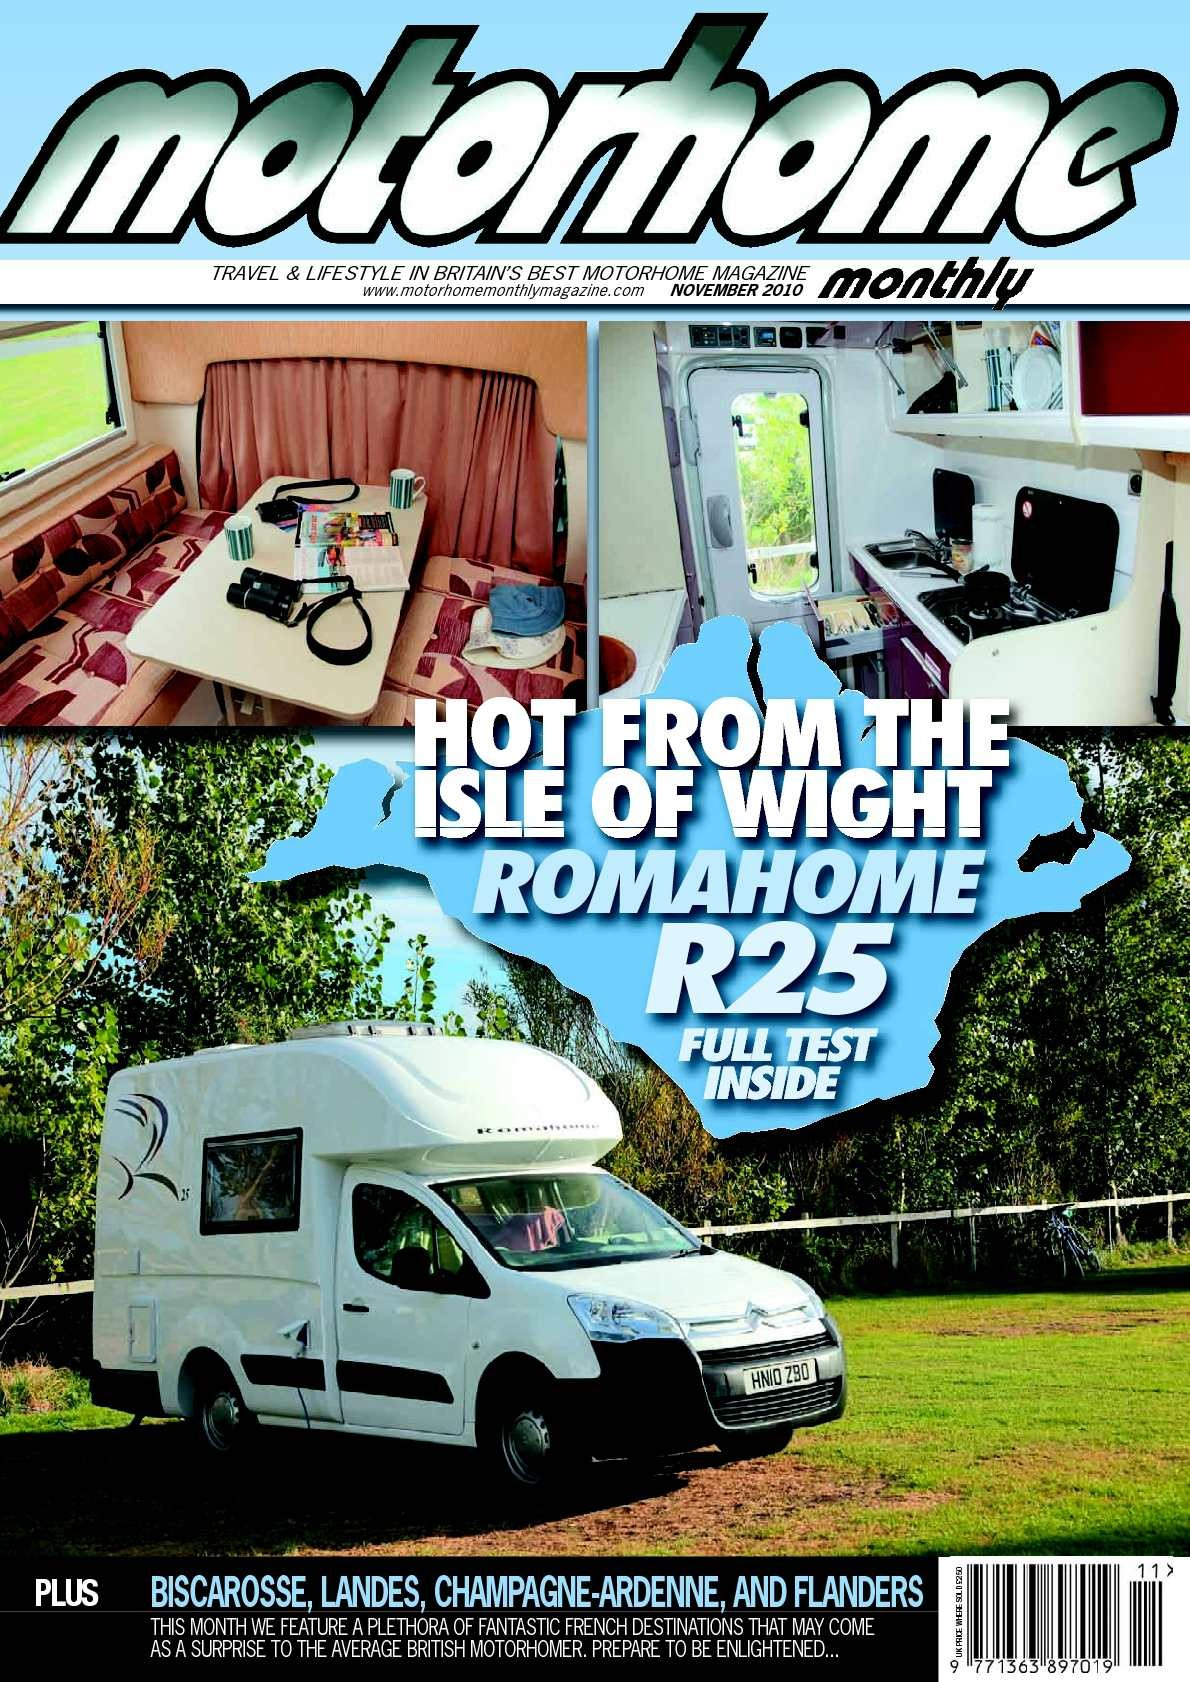 Wire Diagram for Inverter In A 2010 Tiffin Phaeton Calaméo November 2011 Motorhome Monthly Magazine Of Wire Diagram for Inverter In A 2010 Tiffin Phaeton